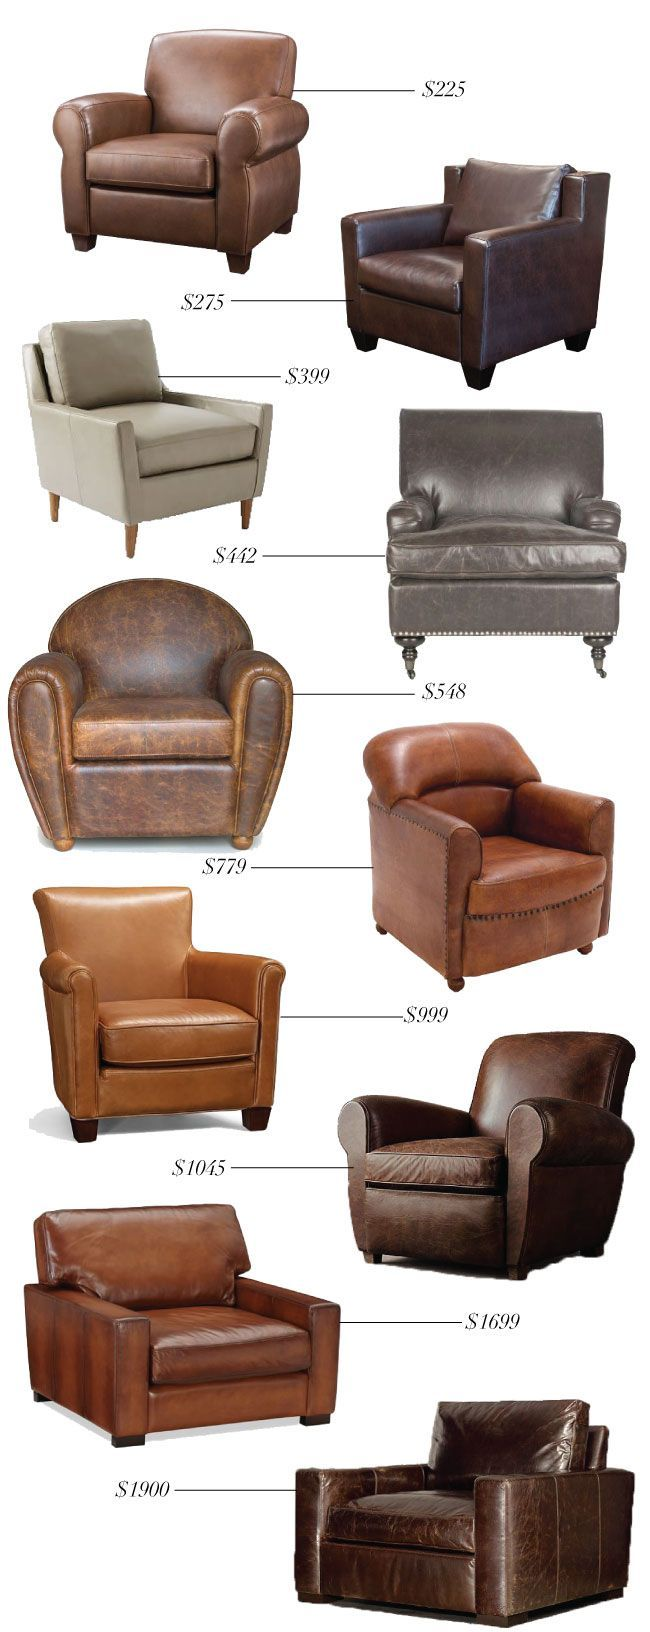 68 best chairs images on pinterest